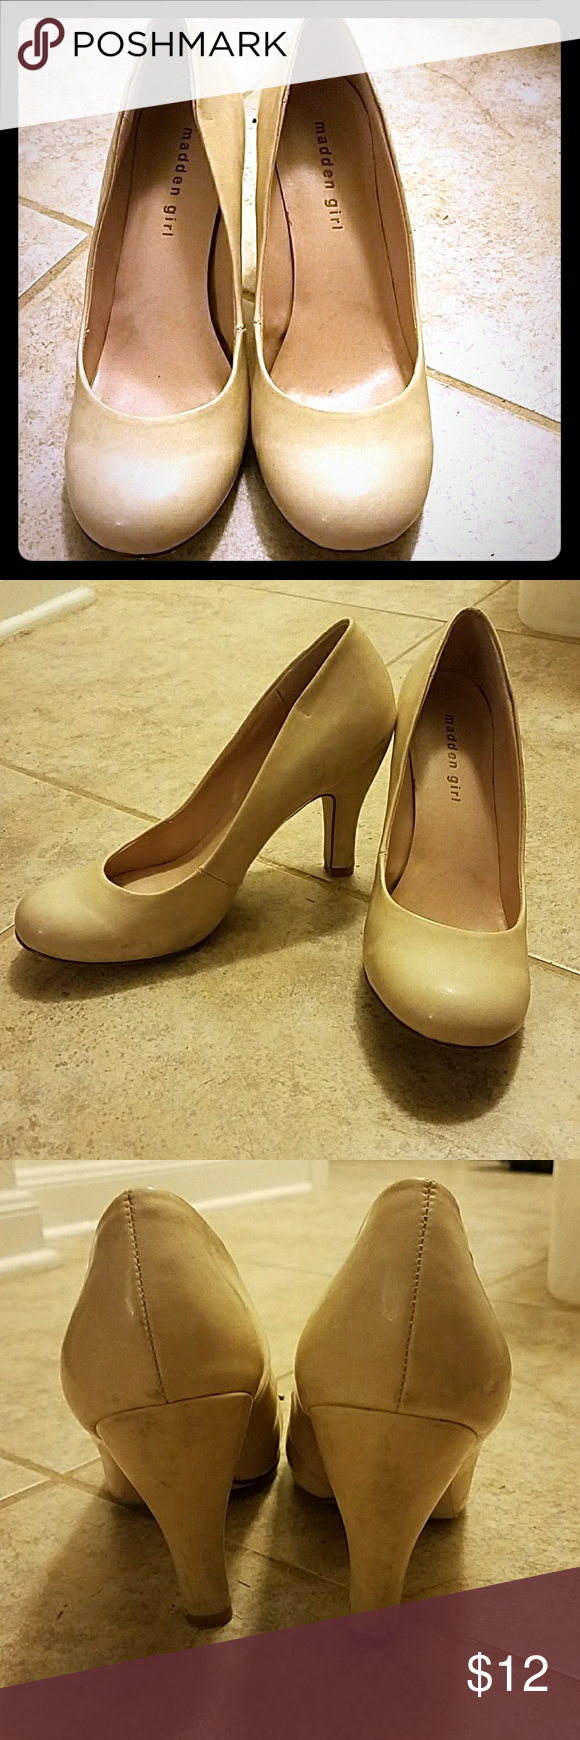 """Pre-loved Madden girl cream  pump Pre-loved Madden girl cream pump. Patent type exterior, height at about 2"""". Madden Girl Shoes Heels"""